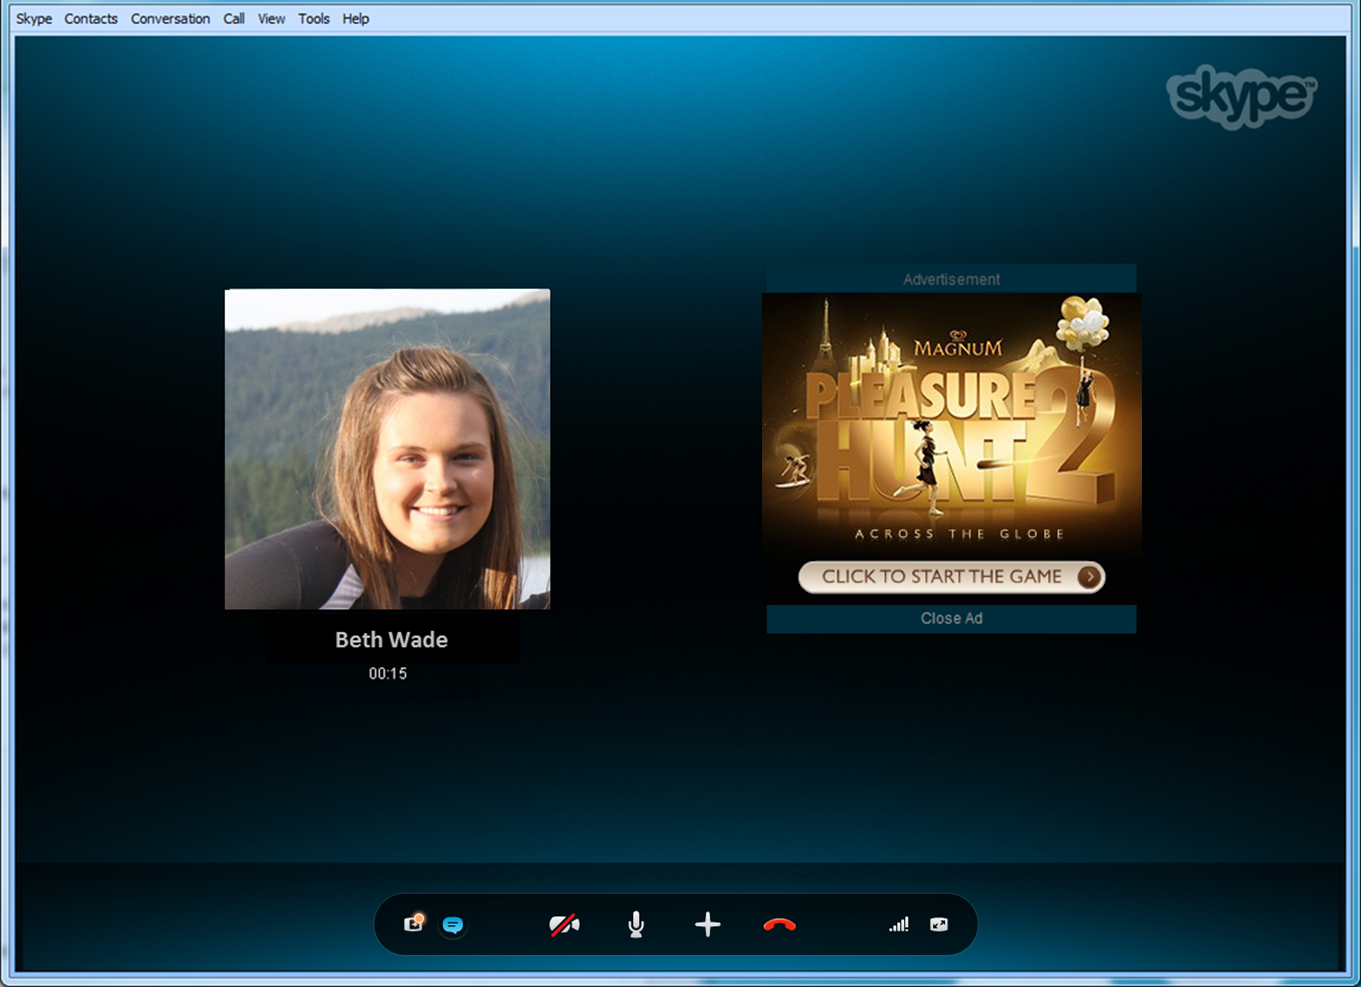 Skype Debuts Conversation Ads For Audio Calls, Hopes To -8498